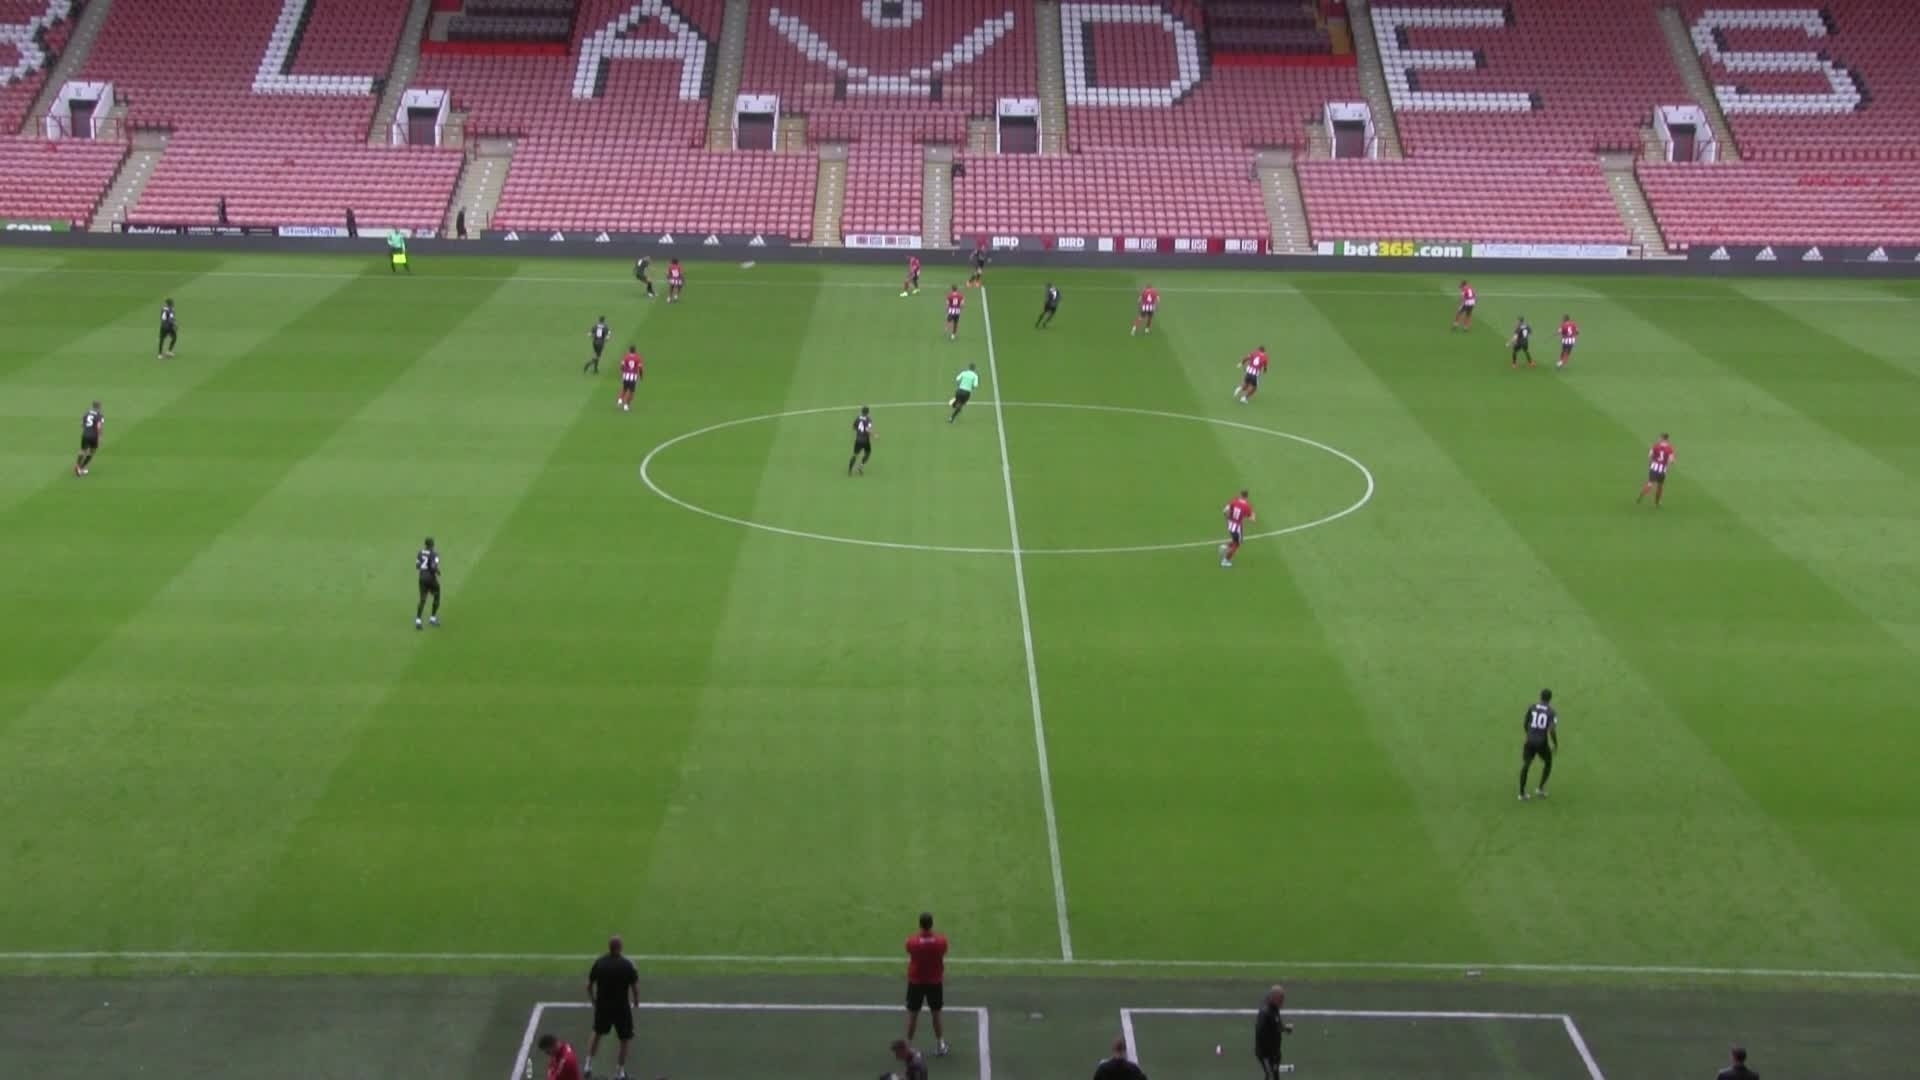 U23 HIGHLIGHTS | Sheffield United 3 Charlton 4 (September 2019)